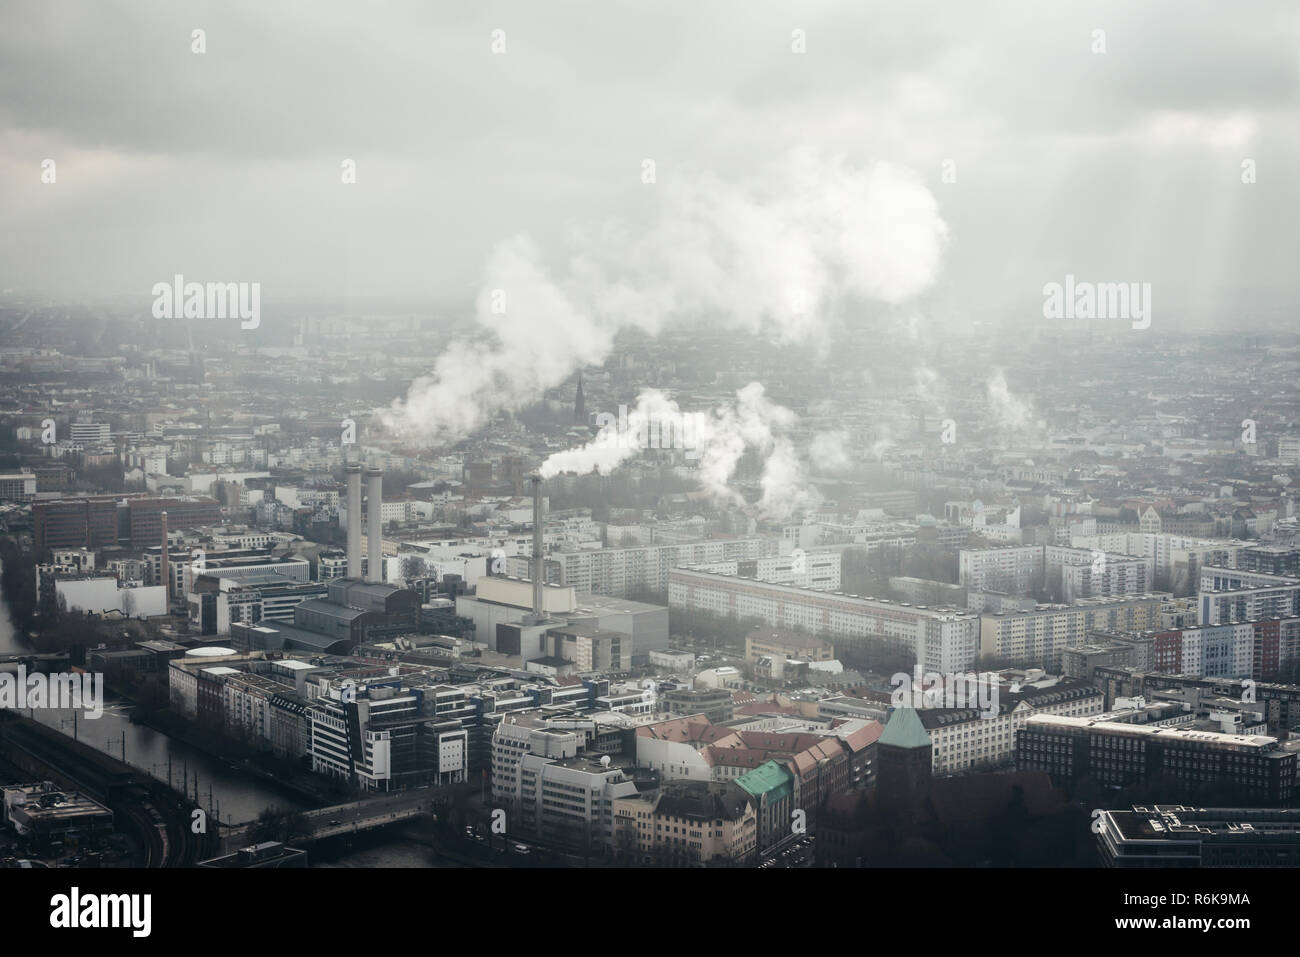 Factory in the center of Berlin city with smoke going from chimneys. Aerial view of industrial city - Stock Image